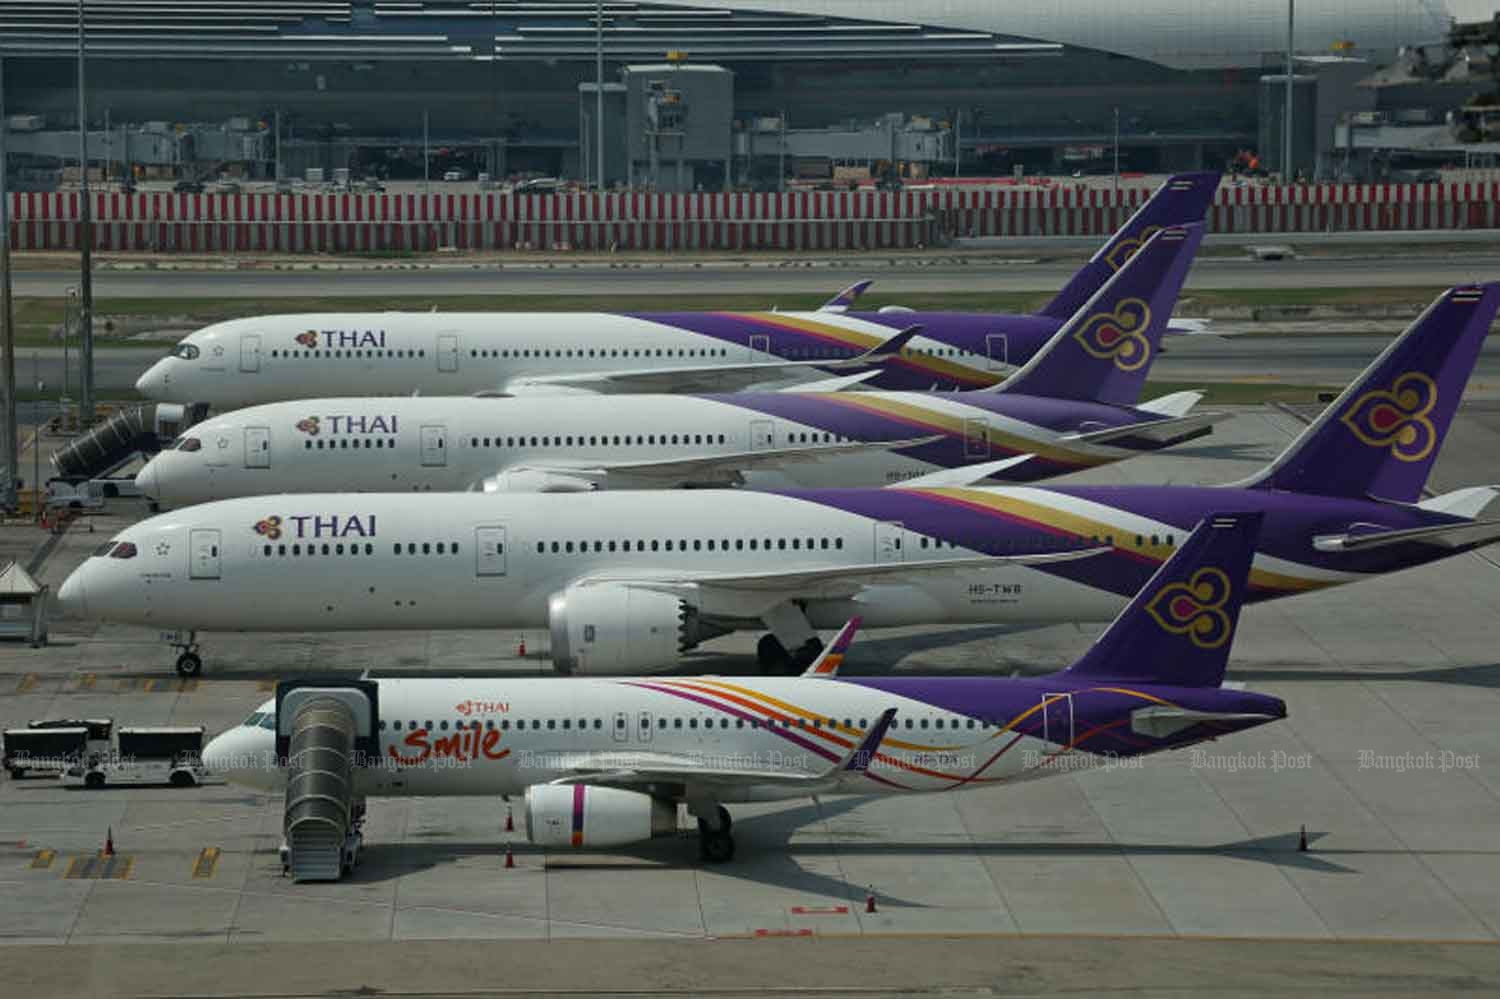 Thai Airways International and THAI Smile planes are grounded on the tarmac at Suvarnabhumi airport. (Bangkok Post photo)